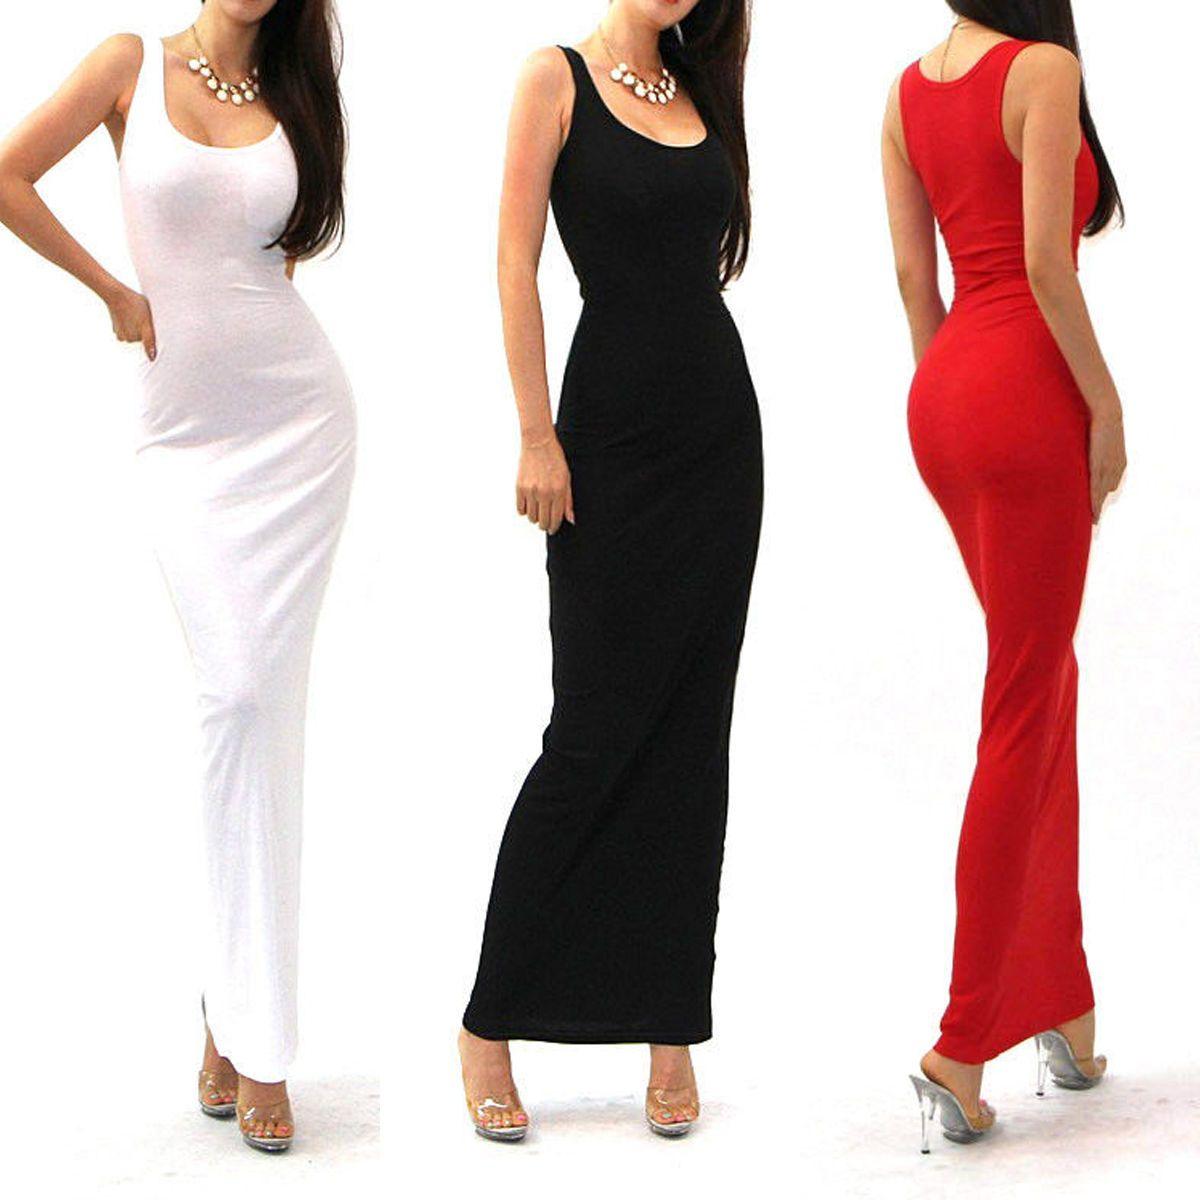 Fashion Sexy Women Sleeveless Bodycon Long Party Evening Dress Slim